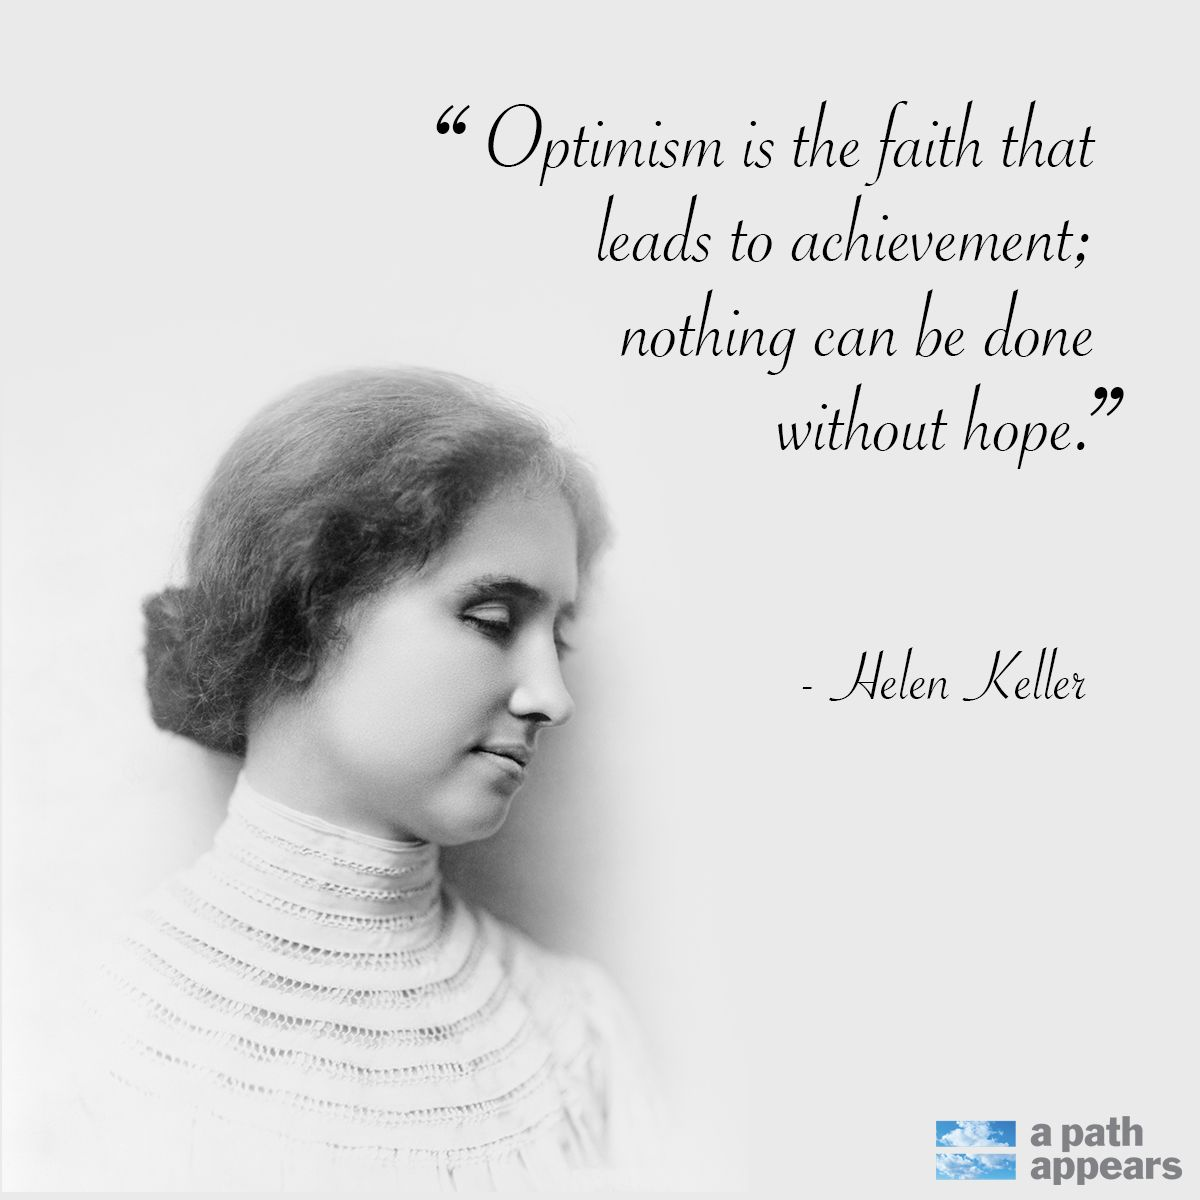 Happy Birthday To A Great Woman Quotes: Happy Birthday To Women's Suffragist And Social Activist